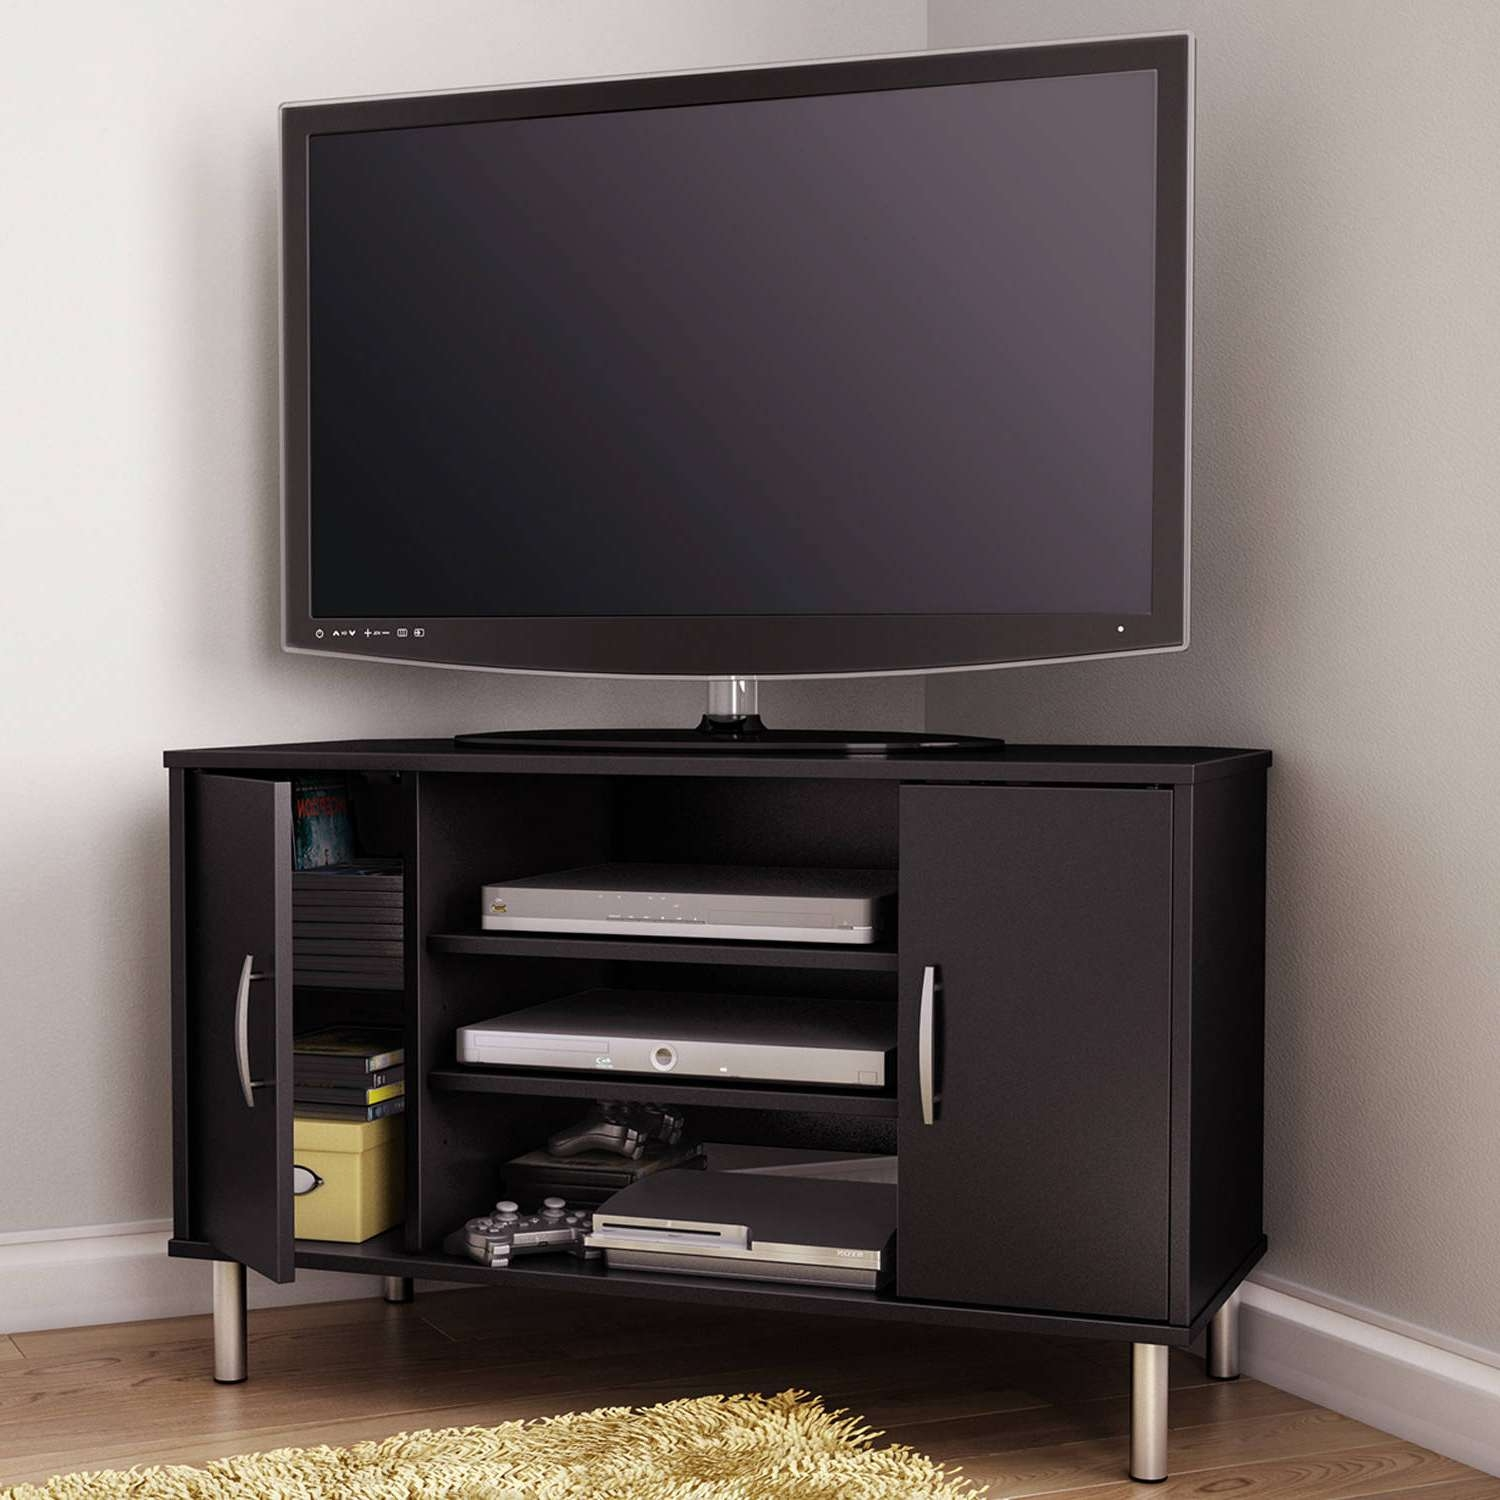 Tv Stand : Stirring Corner Tv Stand For Inch Photo Concept Flat Regarding Tv Stands For Large Tvs (View 2 of 15)